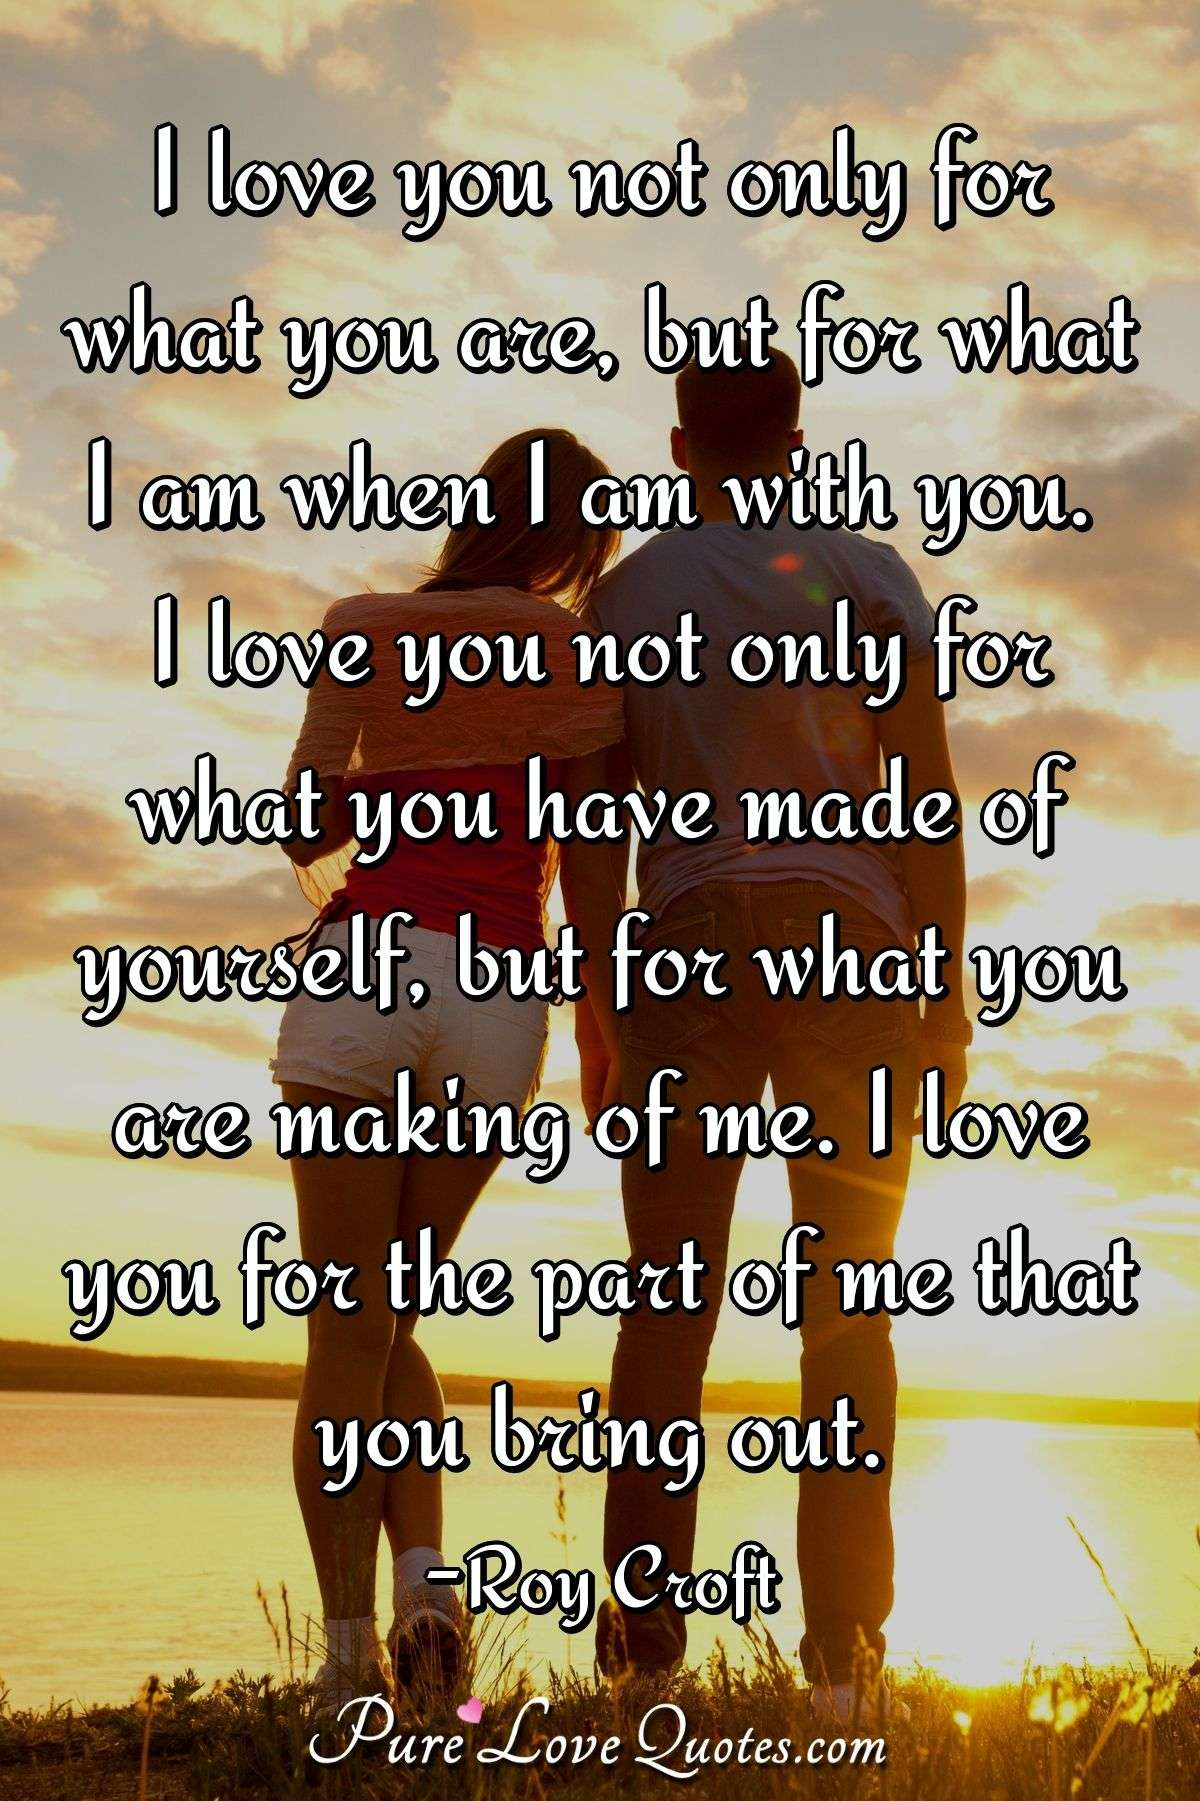 I love you not only for what you are, but for what I am when I am with you. I love you not only for what you have made of yourself, but for what you are making of me. I love you for the part of me that you bring out. - Roy Croft